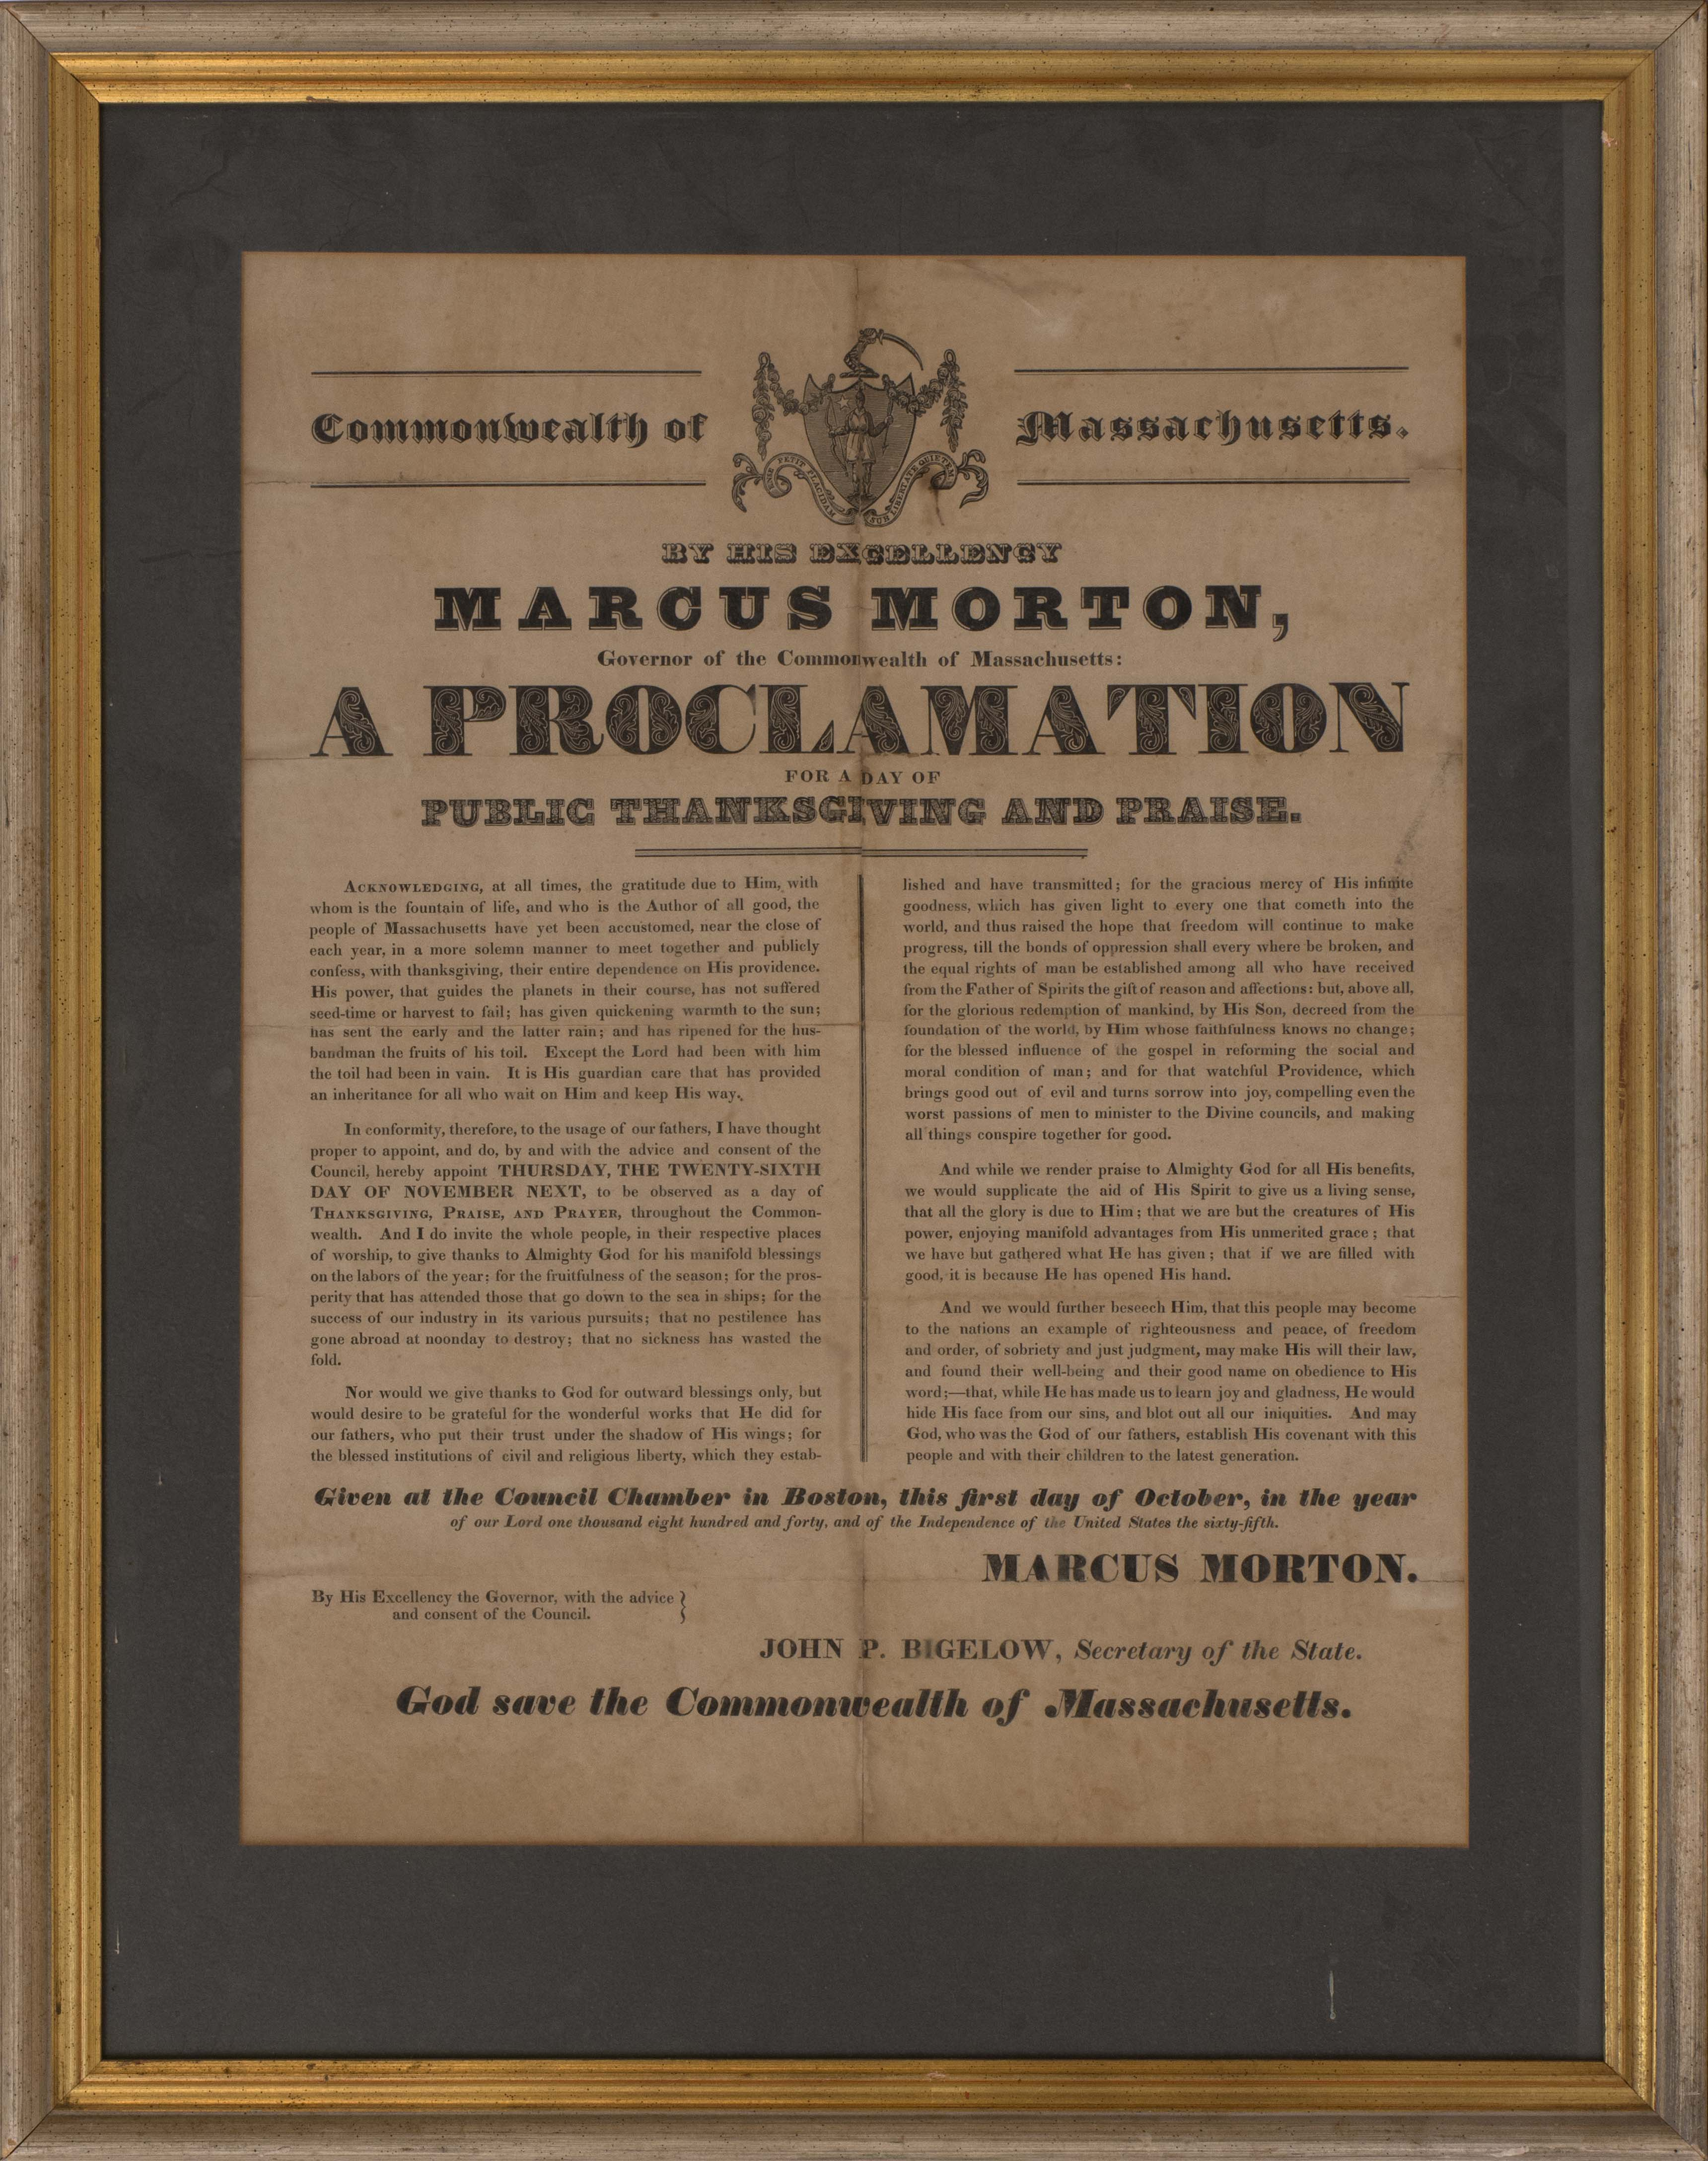 FRAMED BROADSIDE PROCLAIMING A DAY OF PUBLIC